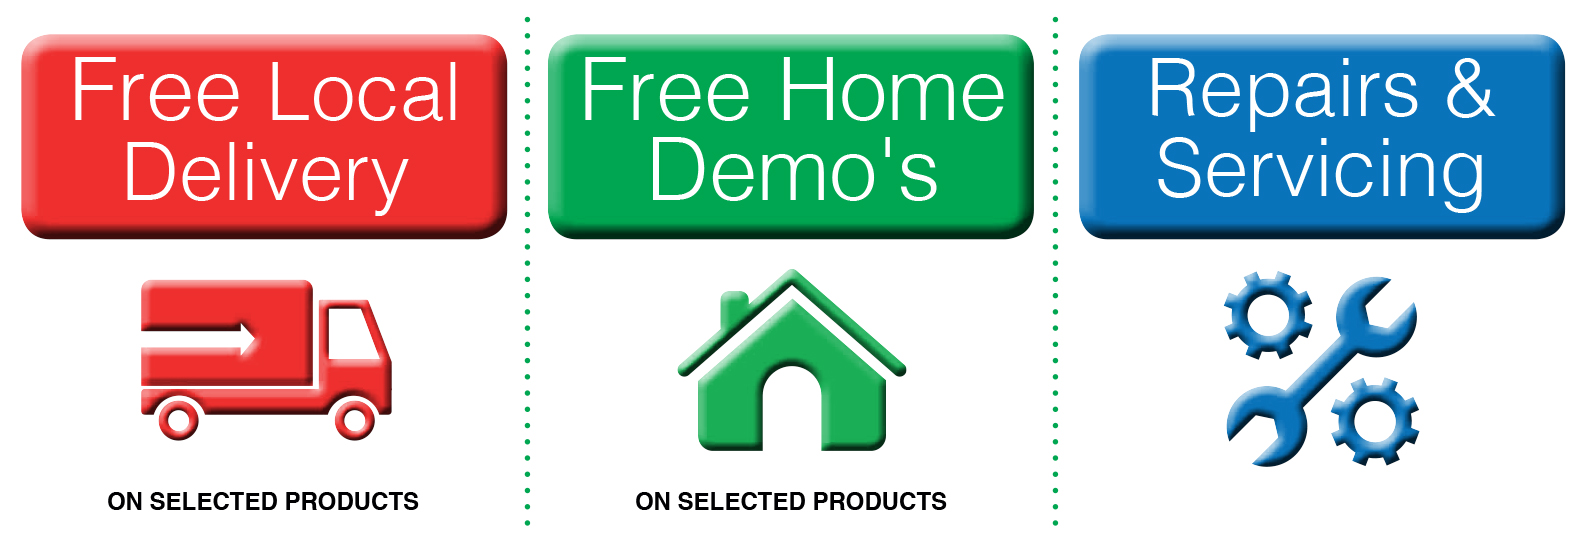 Selected products - free local deliver and home demos. Repairs and servicing